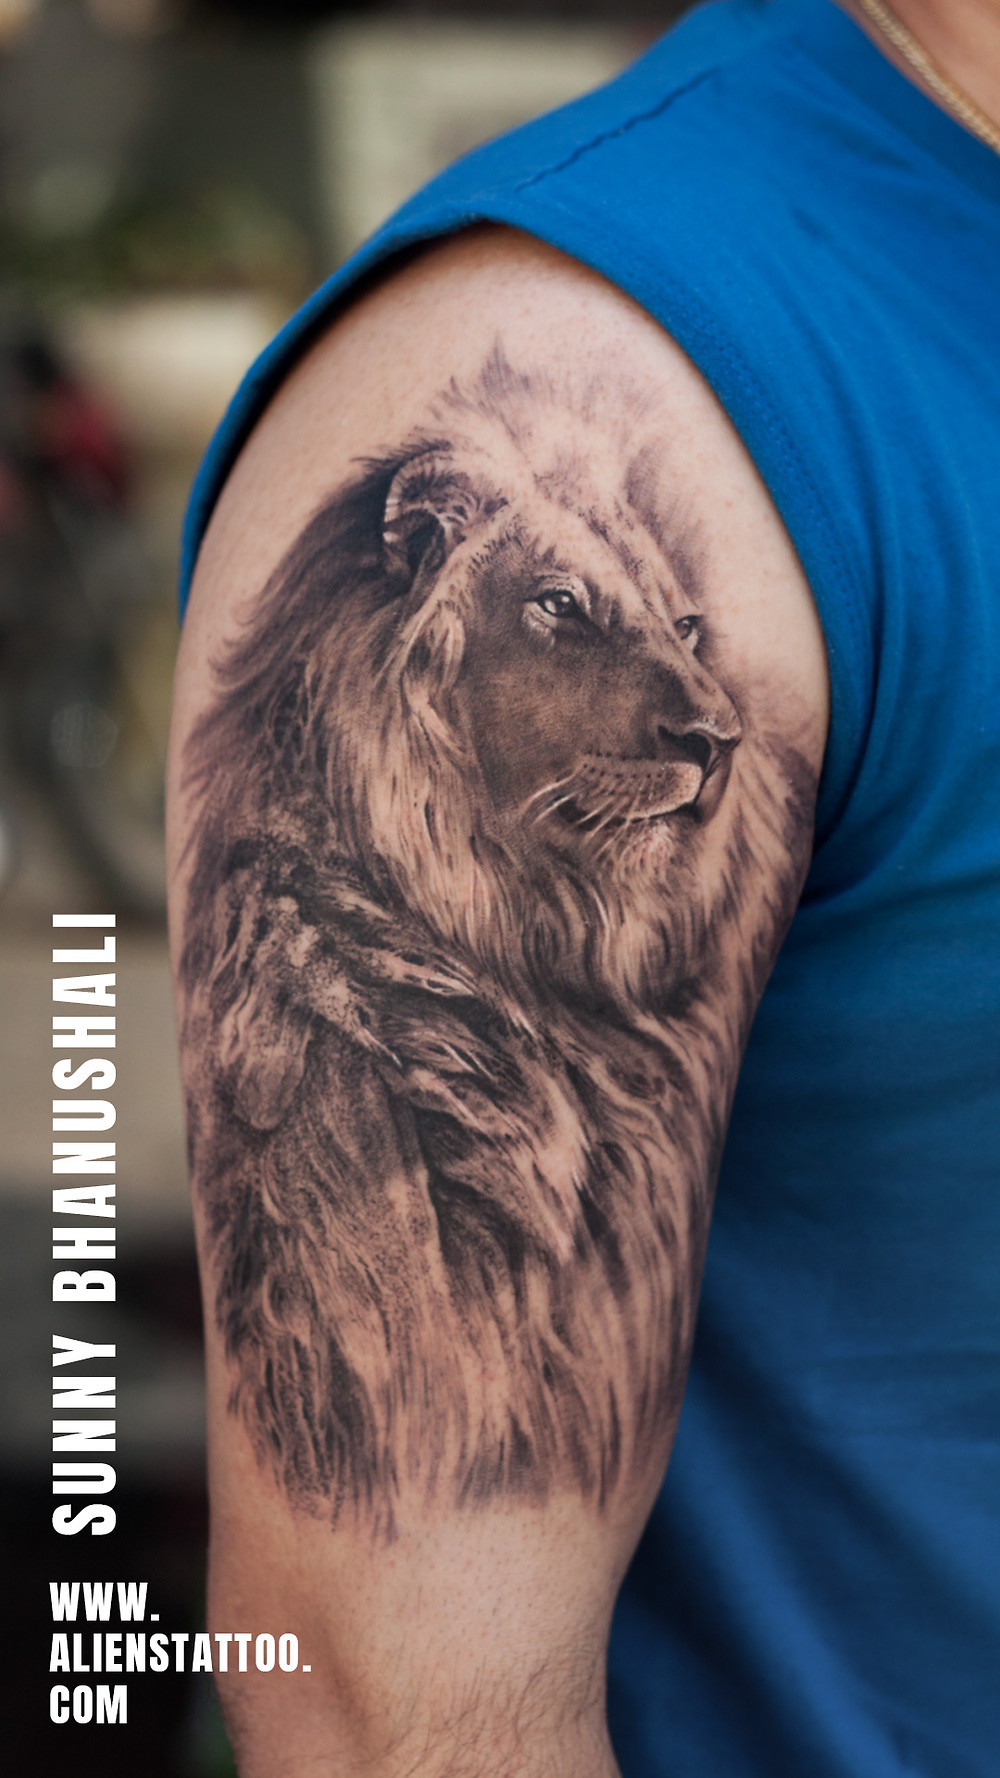 Lion Tattoo - Animal Tattoo - Aliens Tattoo